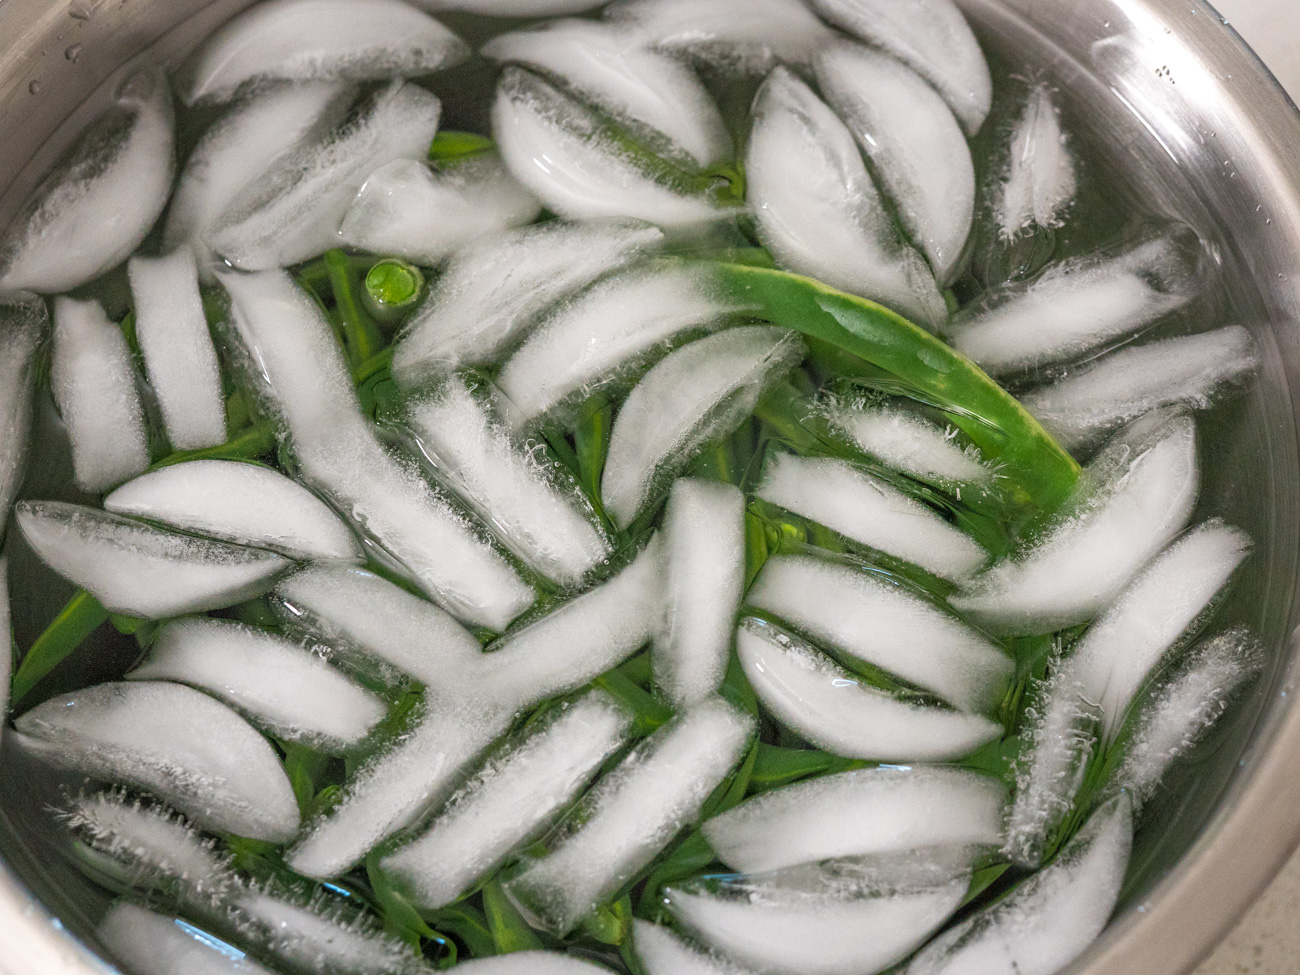 After the 3 minutes are up, strain green beans and then dunk them into the ice water for about 1 minute.